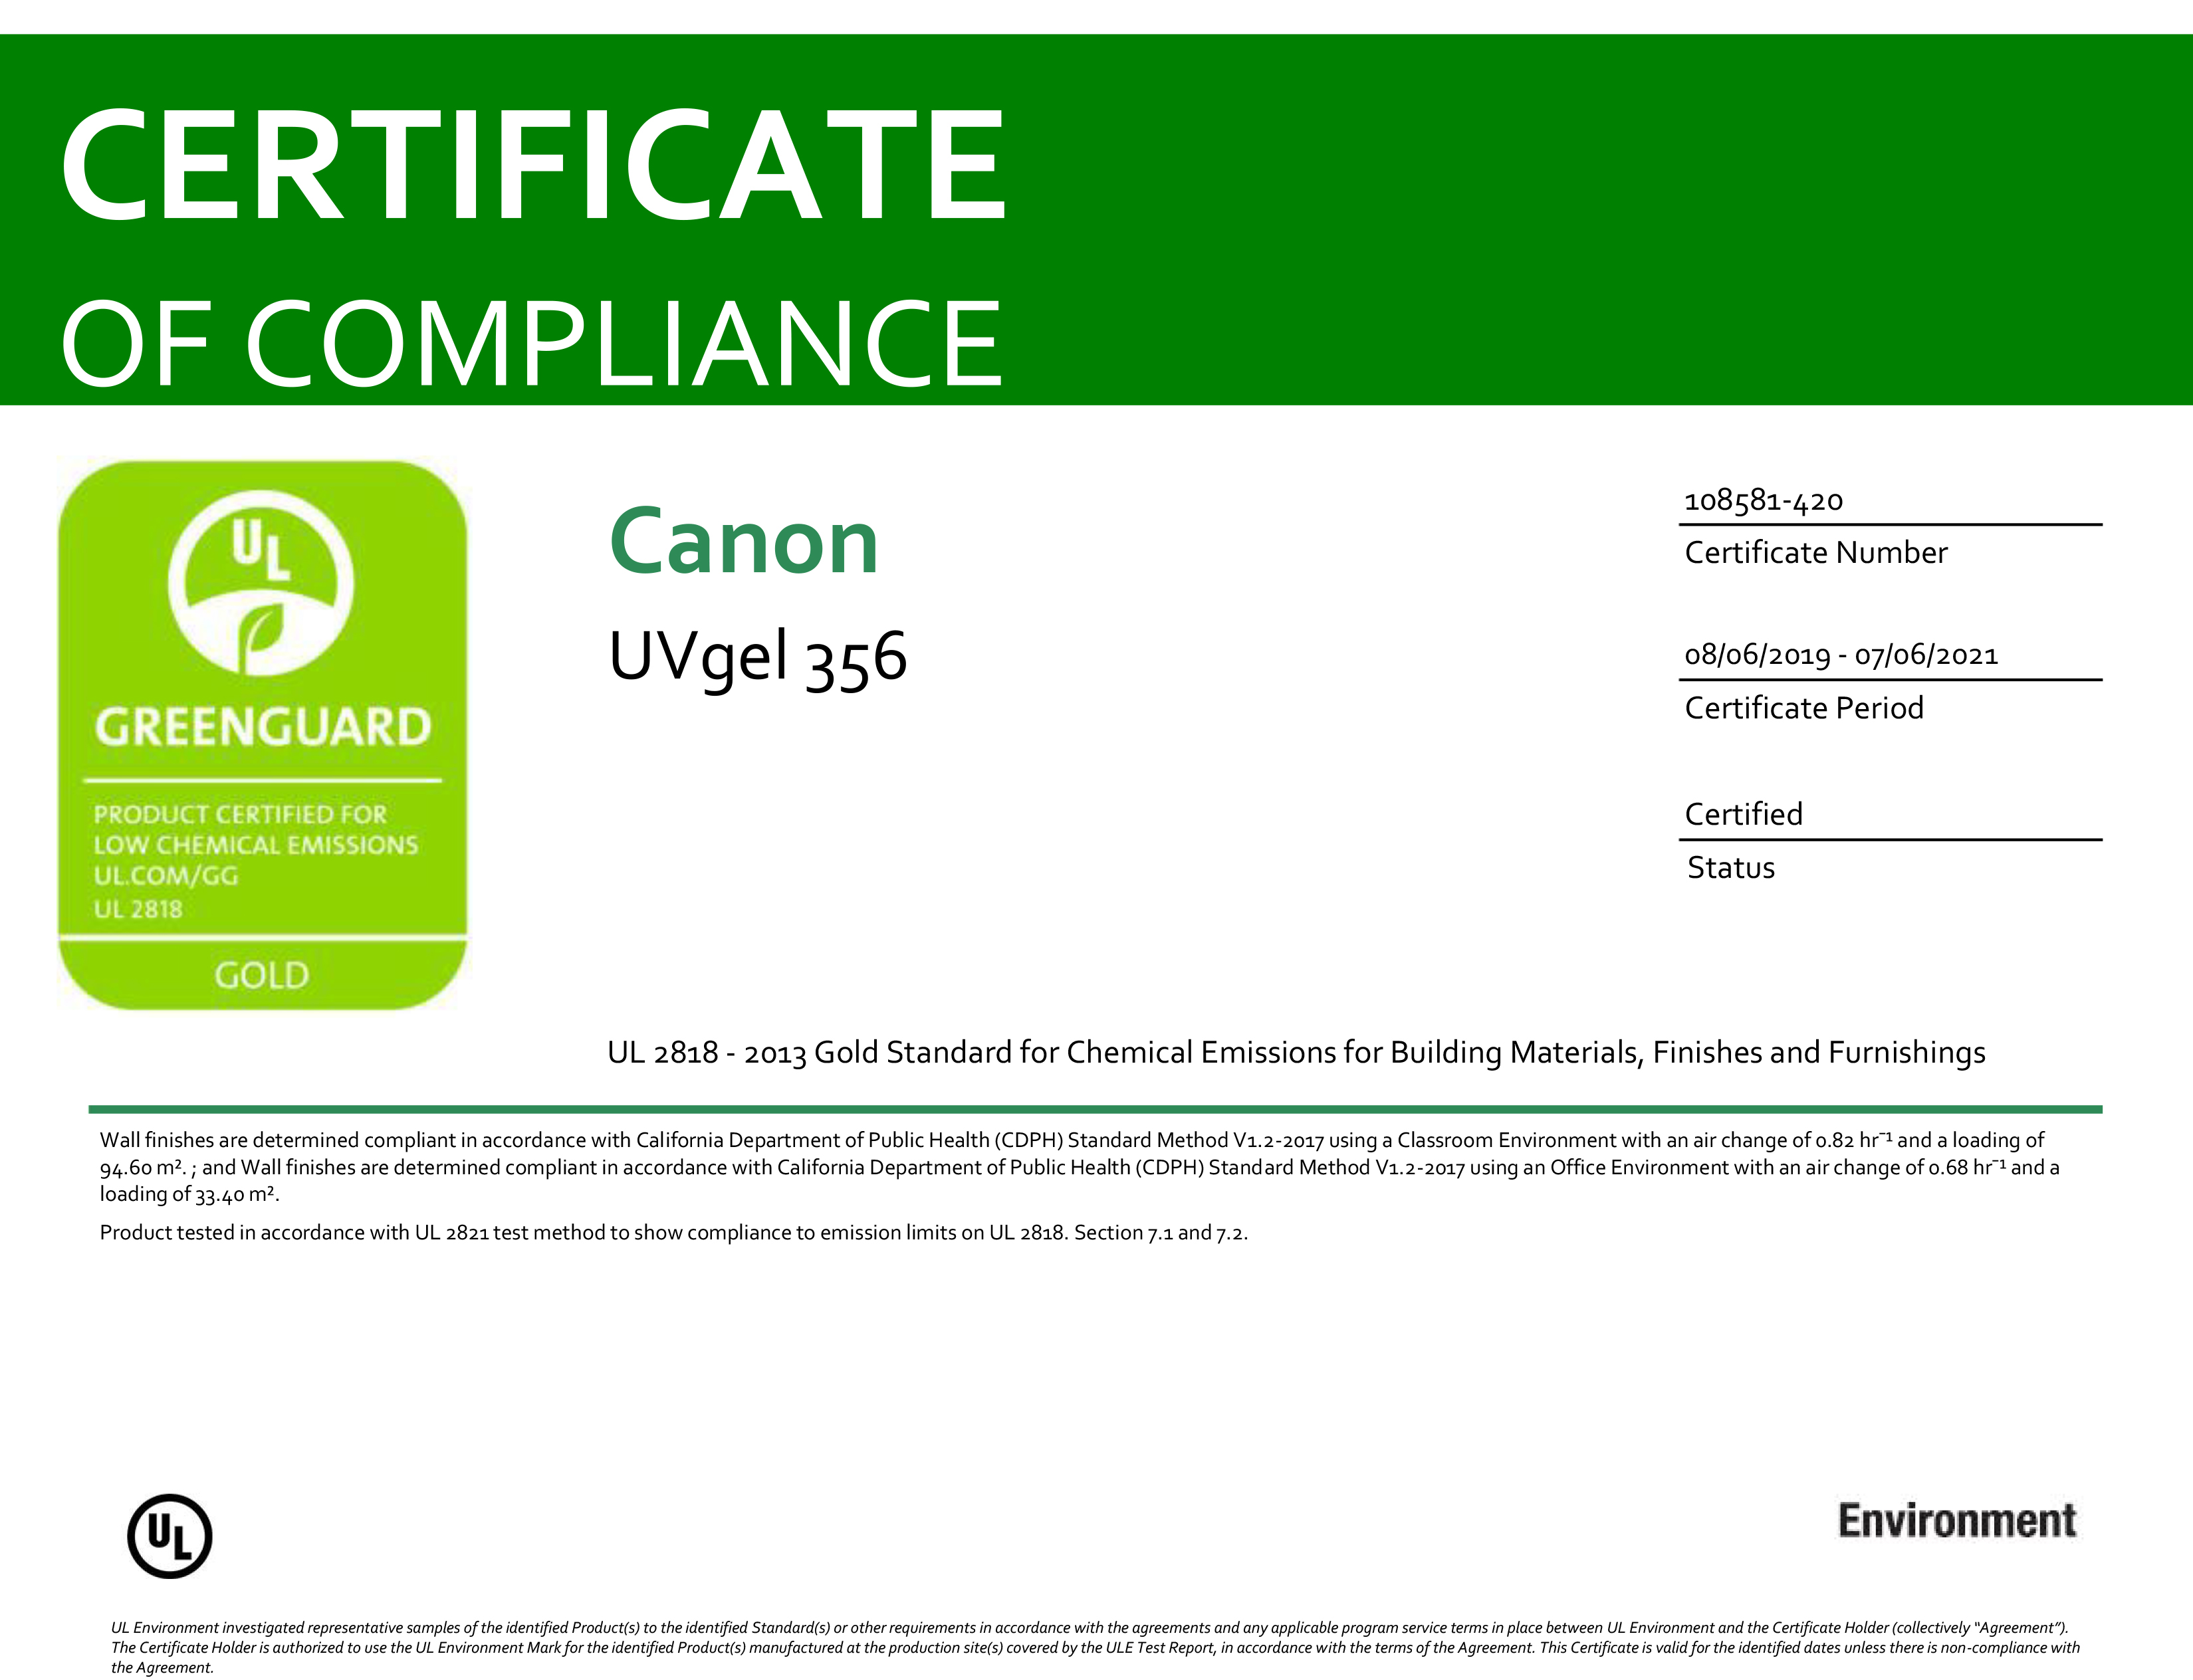 7_GGG_Canon_UL Certification_UVgel_356-1